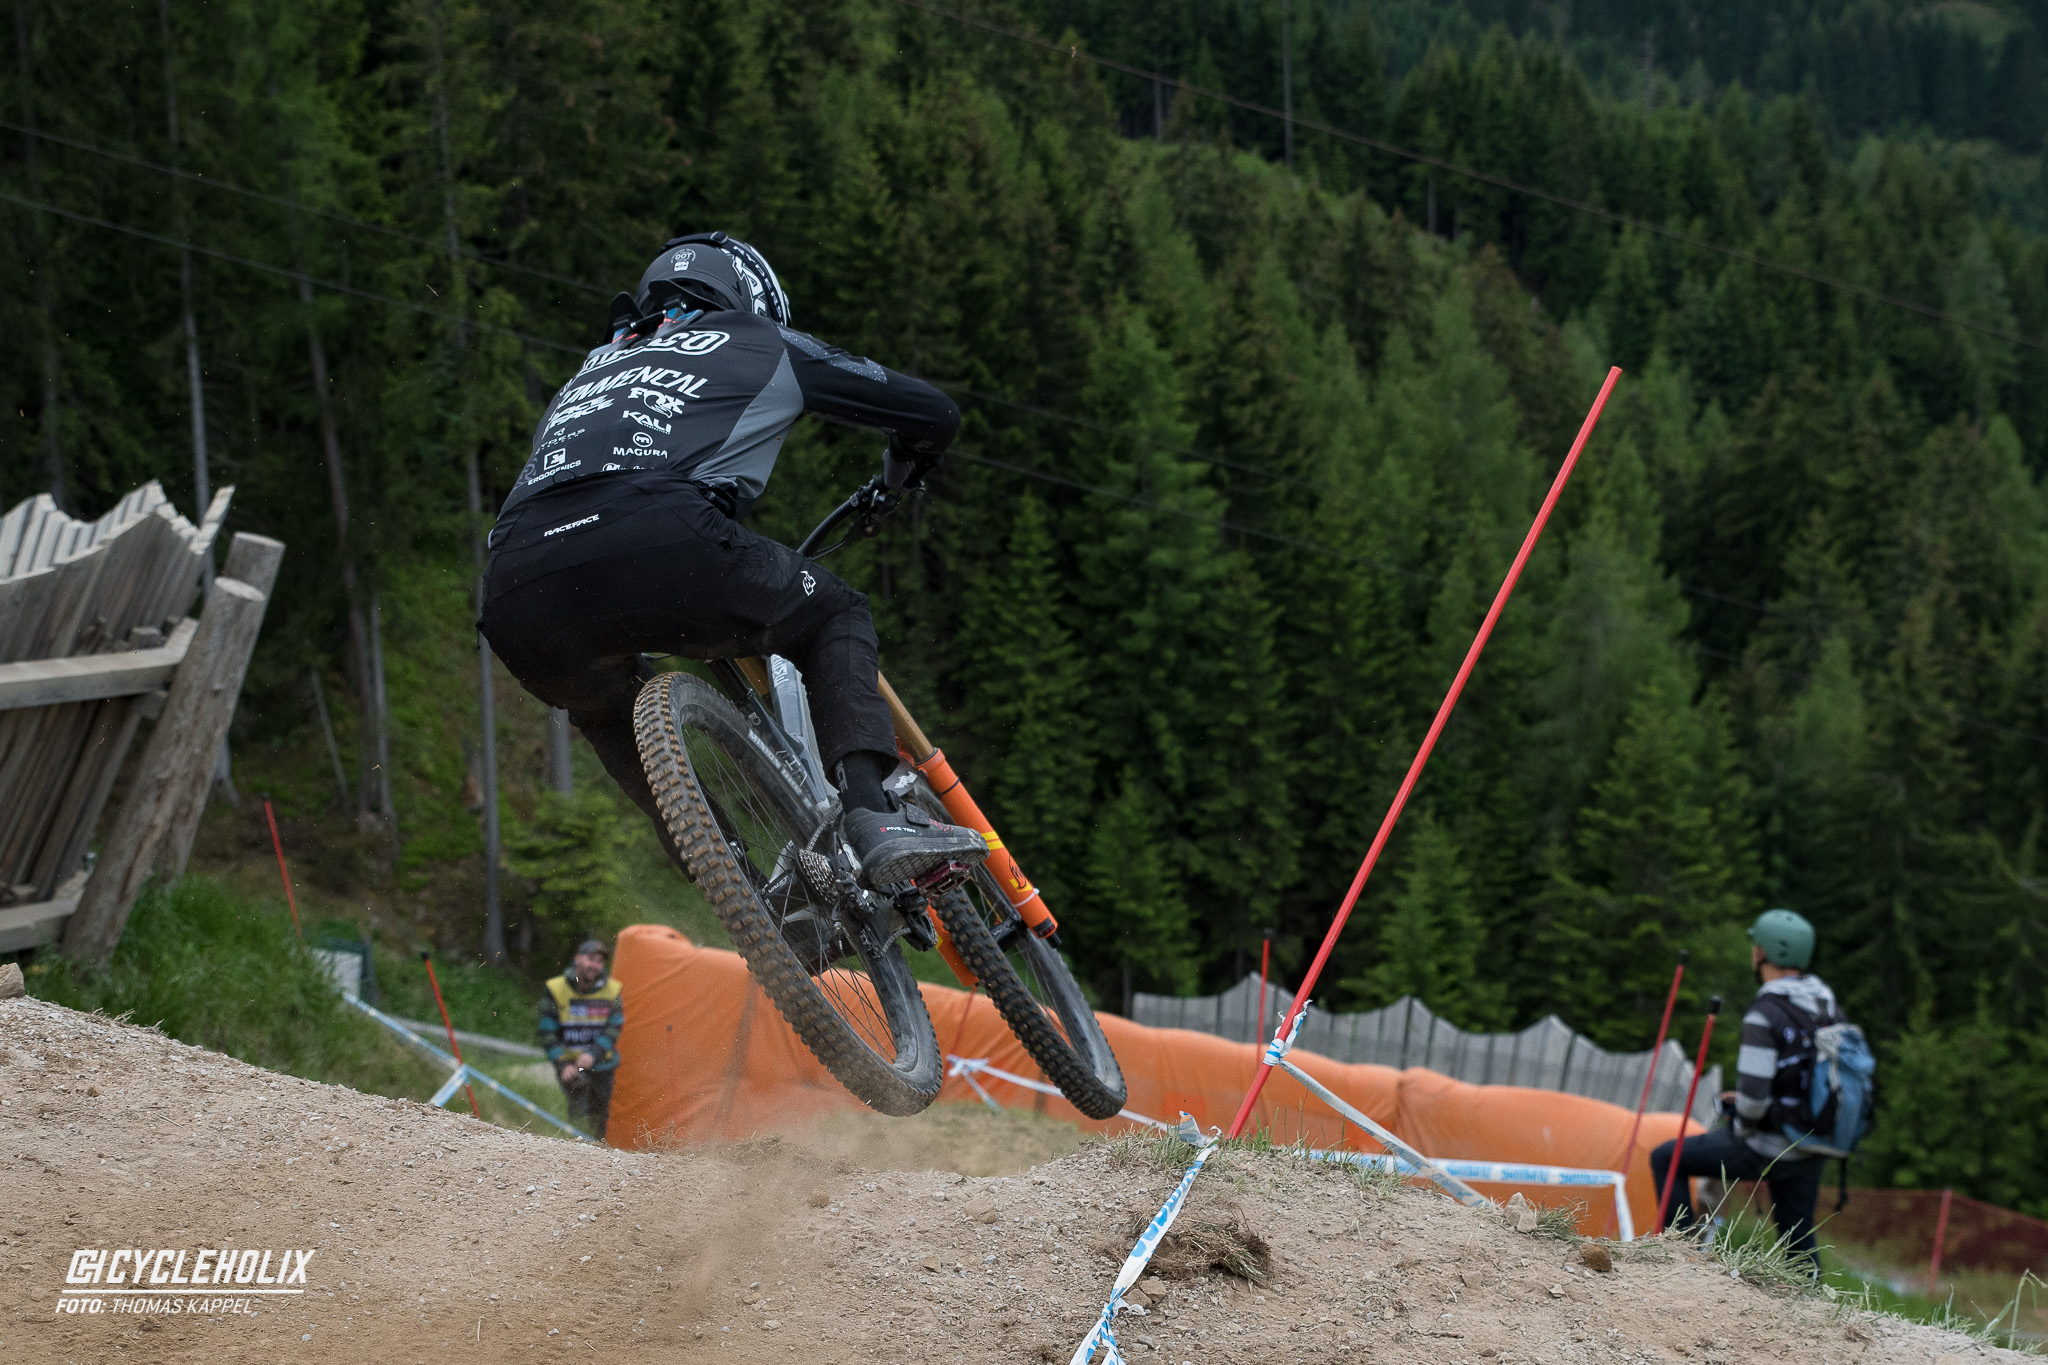 2019 Downhill Worldcup Leogang Finale Action QA 3